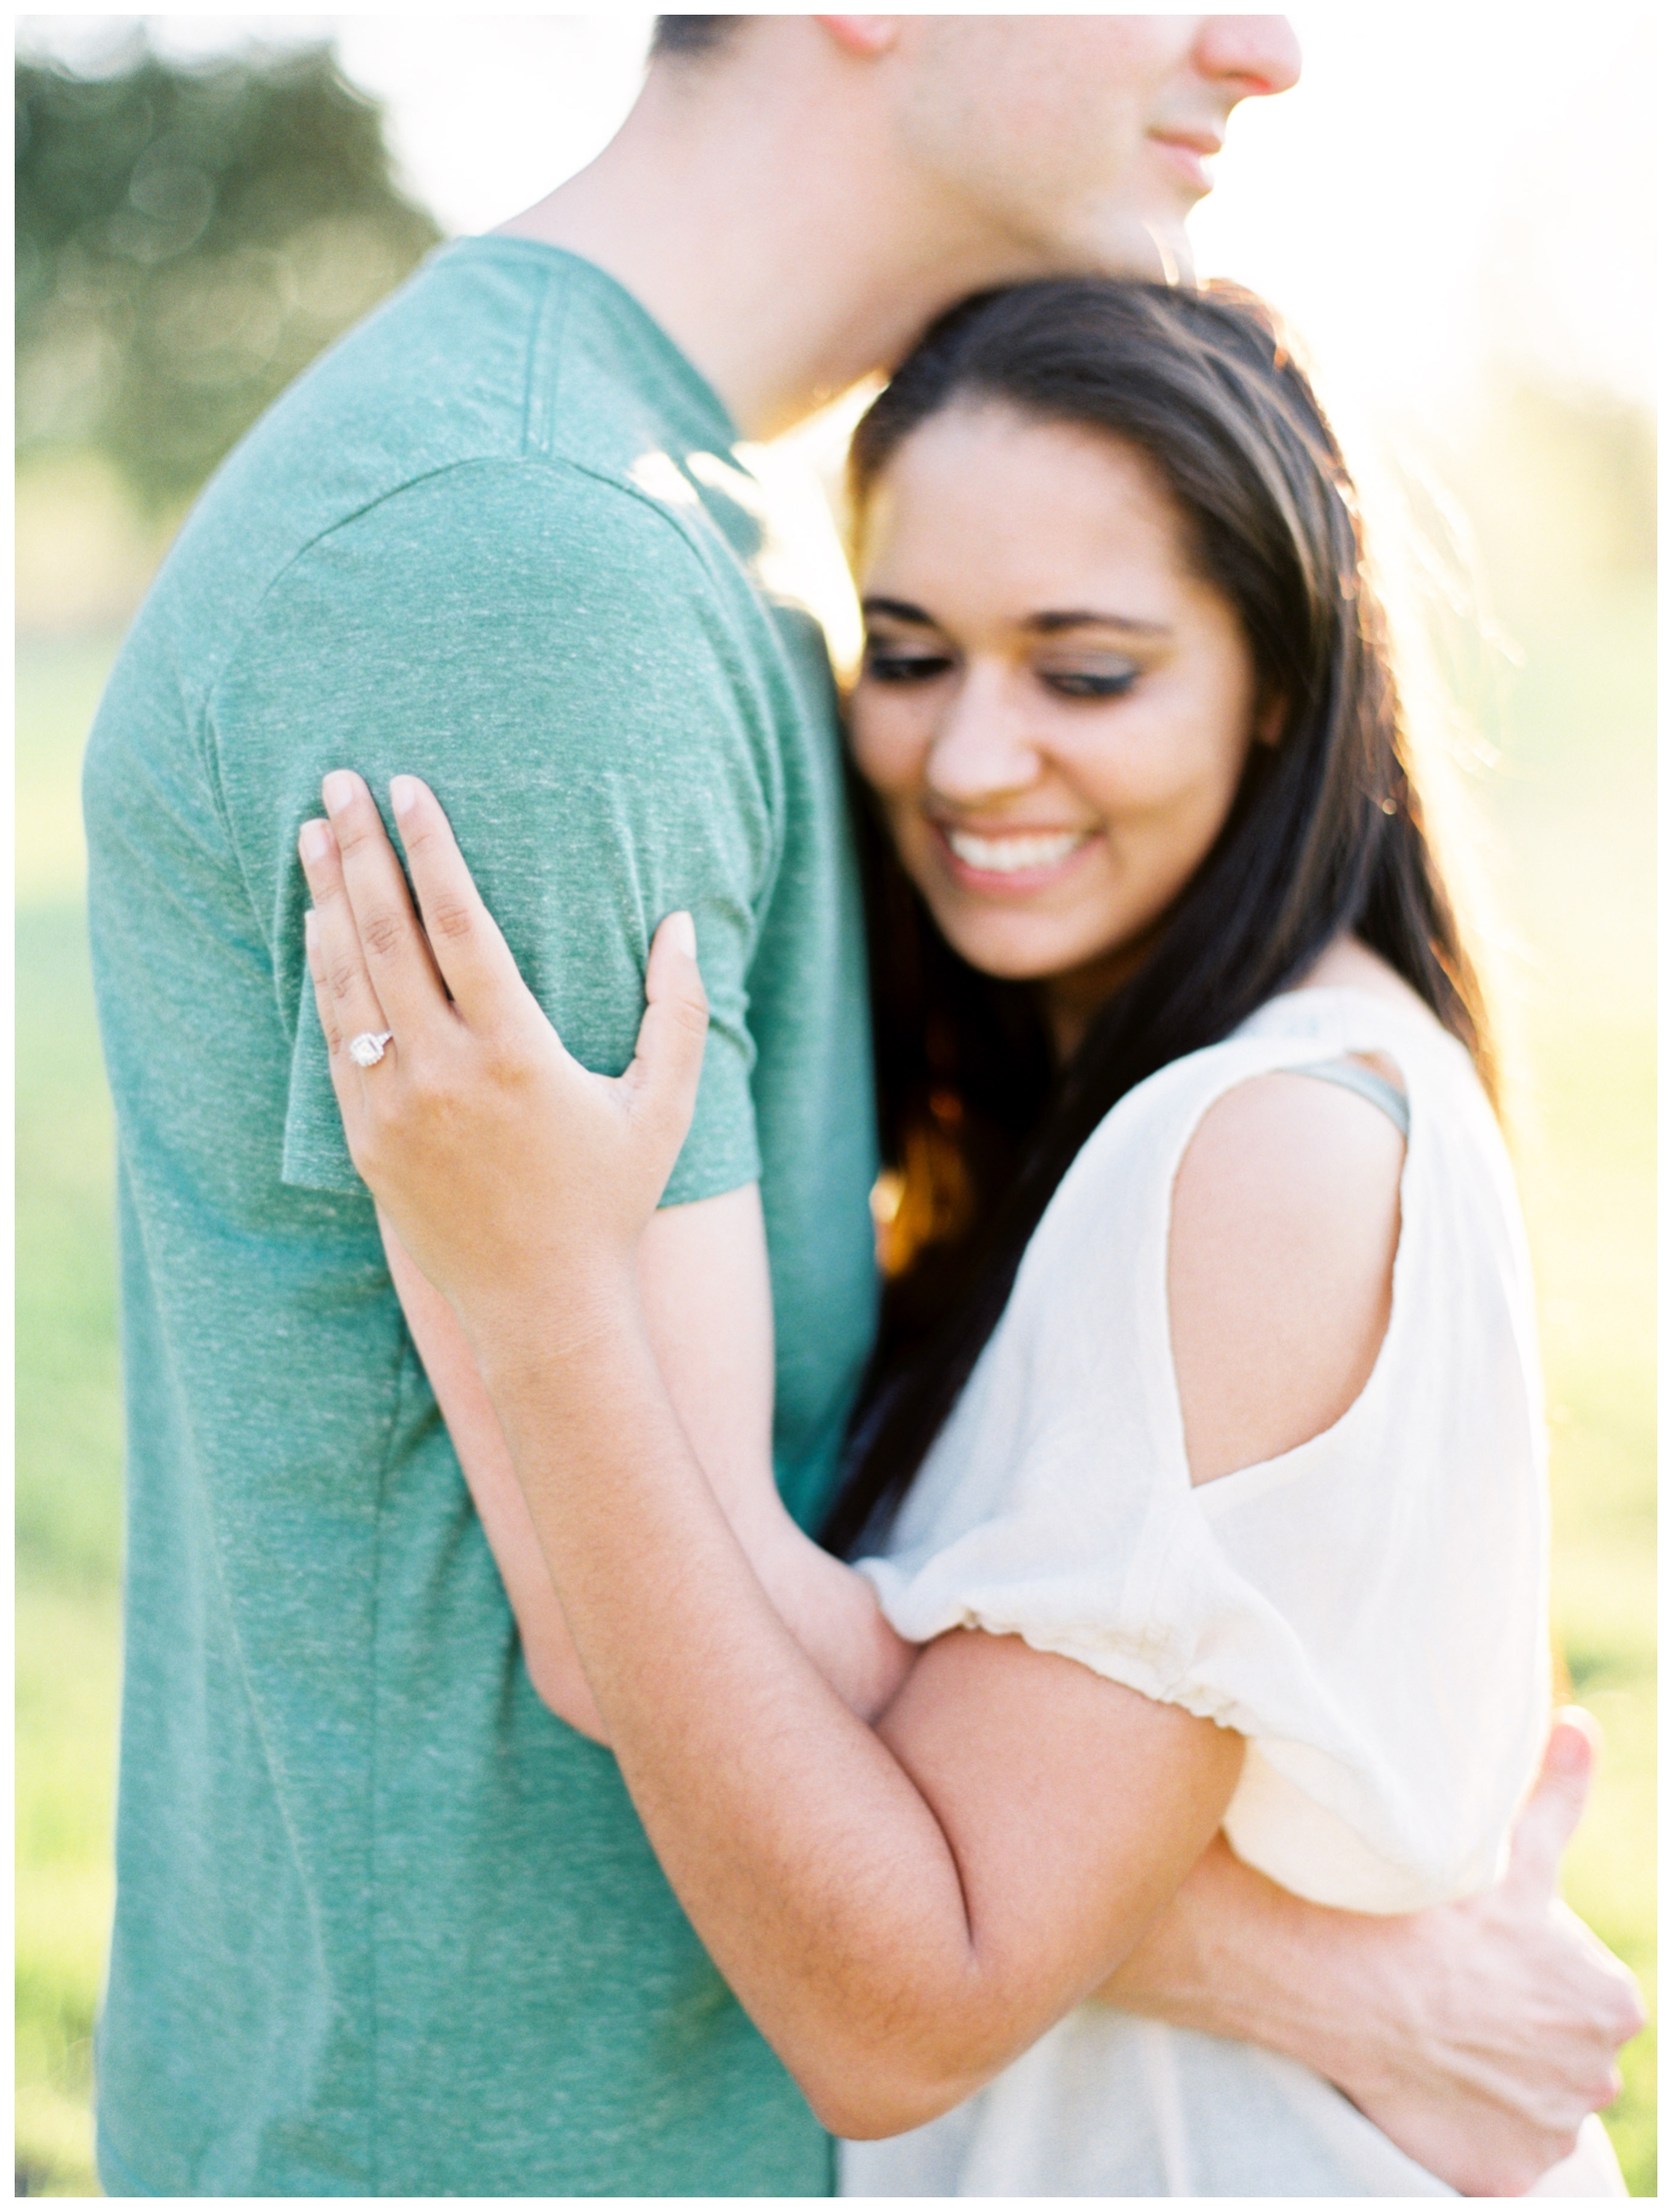 Nyssa & JD Engagements - Rock Lake Ranch - College Station Tx - Film-29_STP.jpg